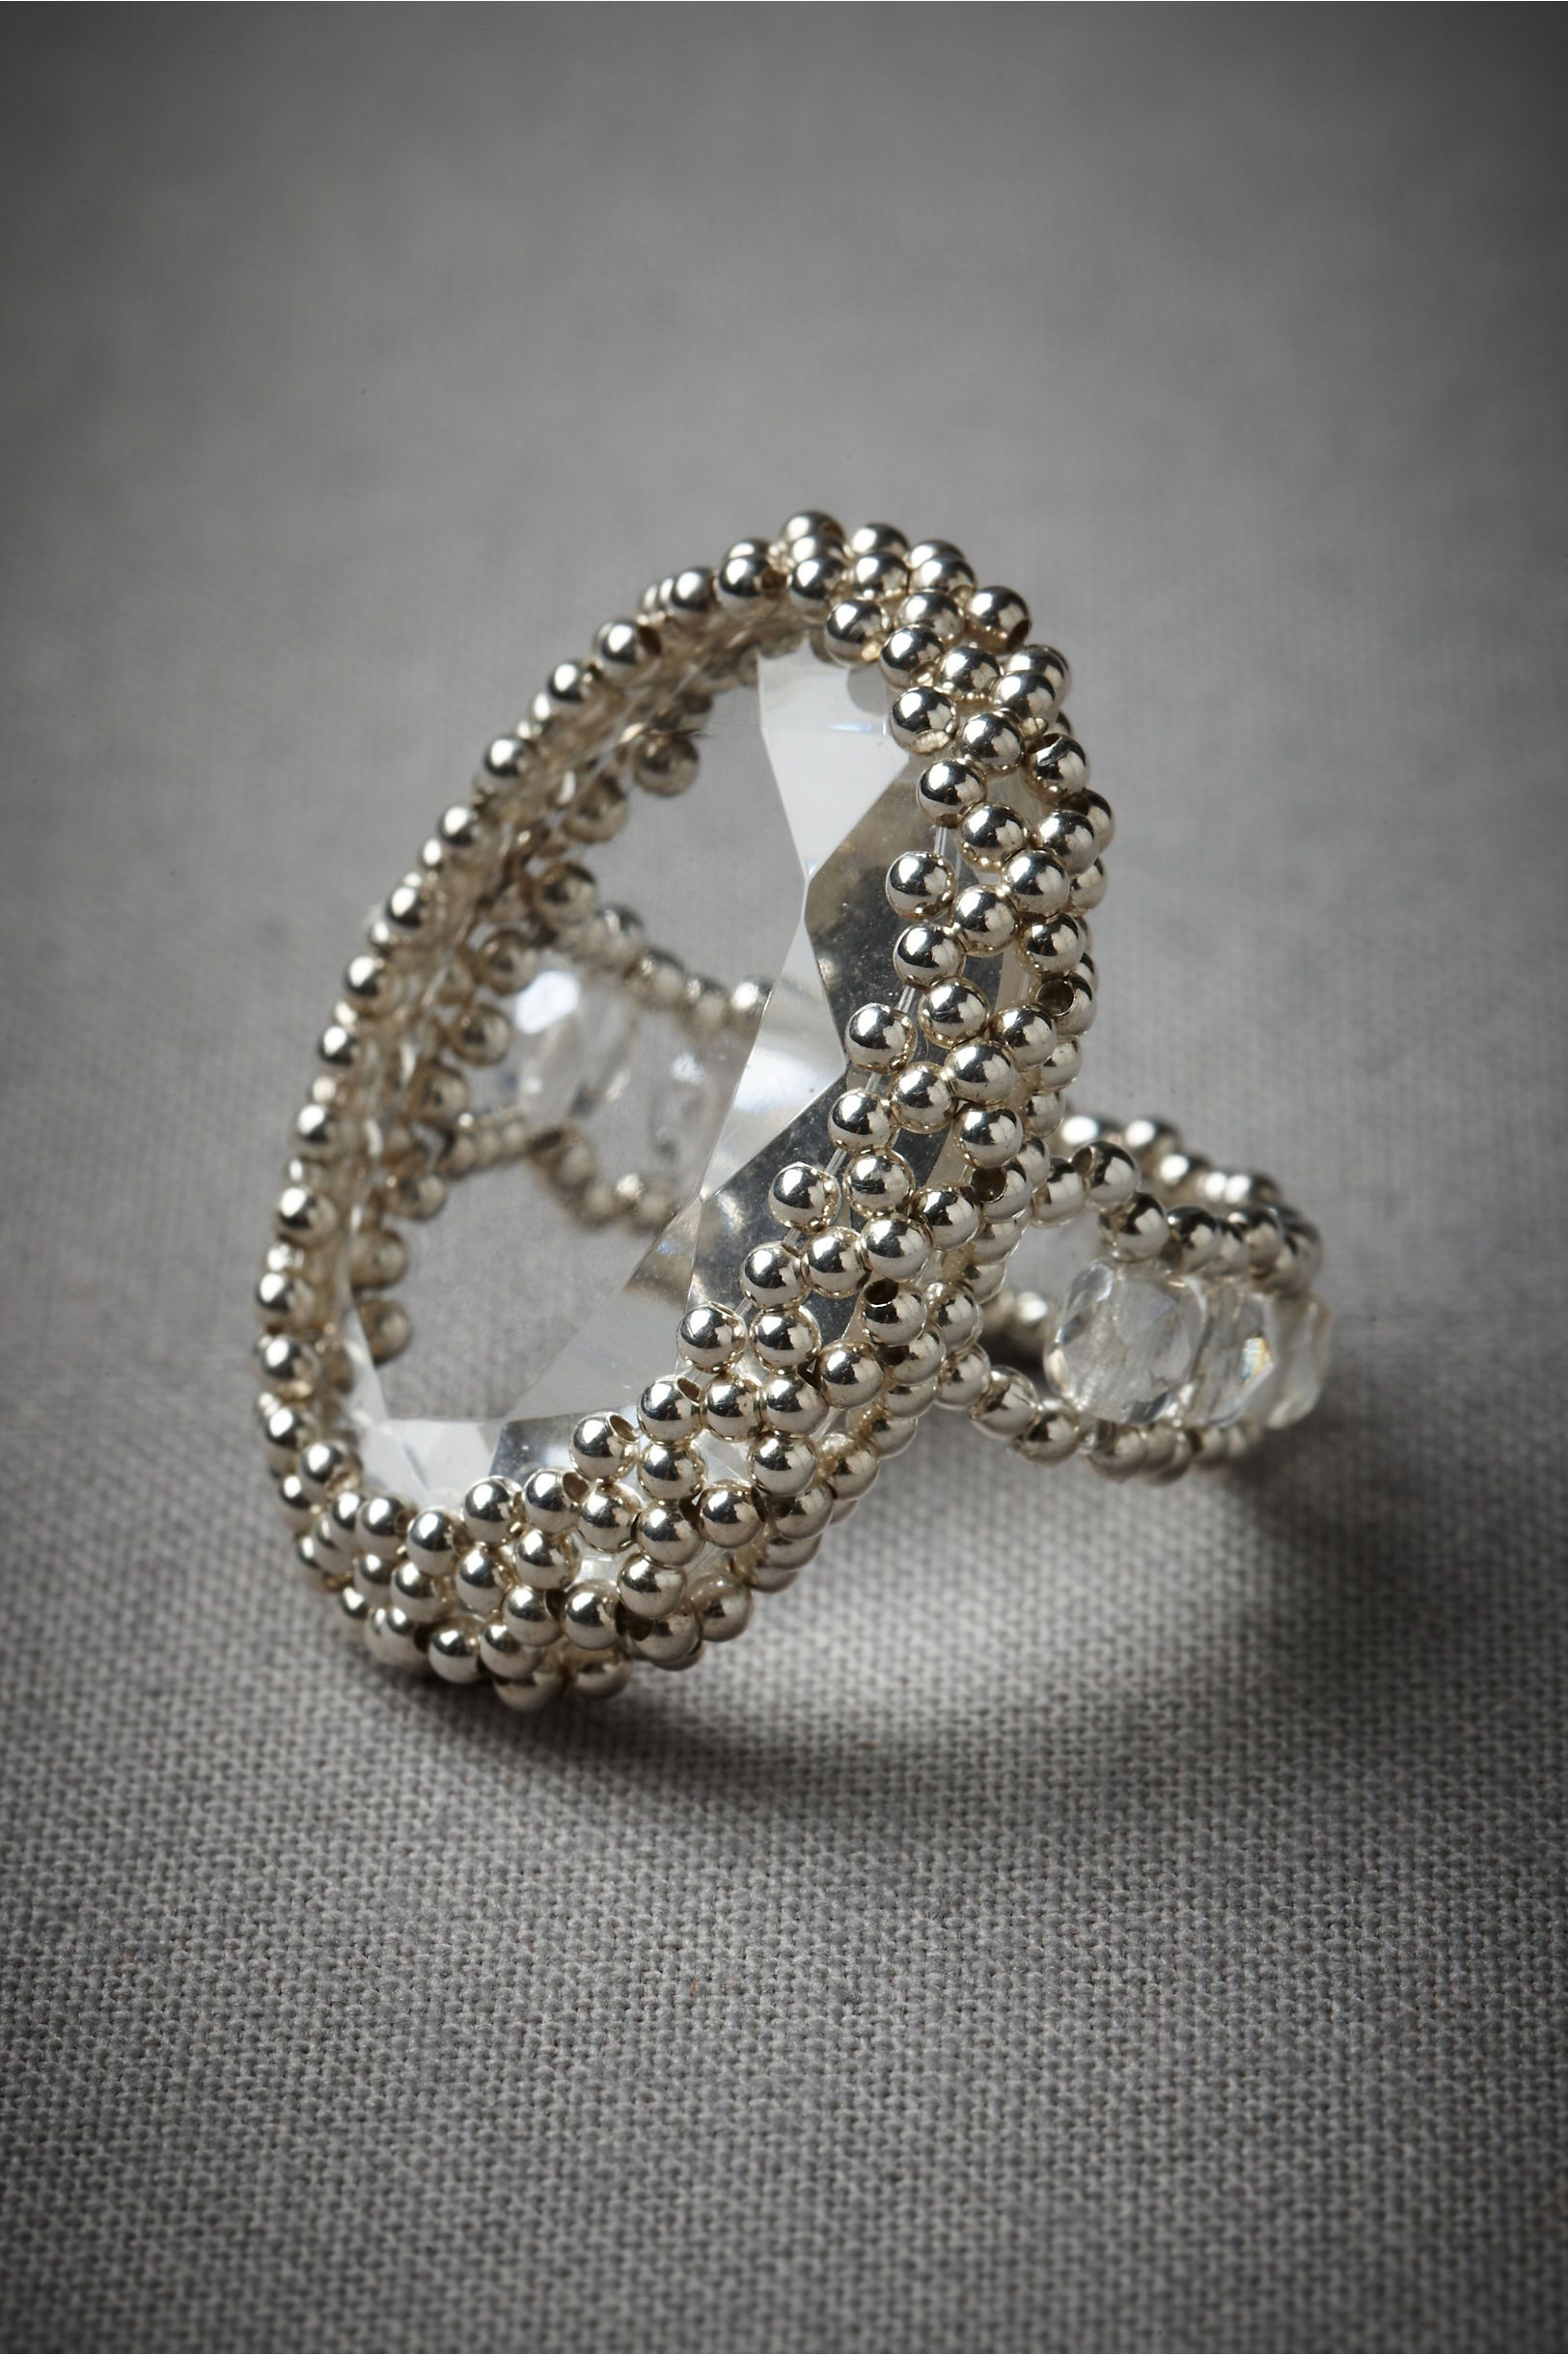 Magnetic Attraction Ring in SHOP Shoes & Accessories Jewelry Rings at BHLDN